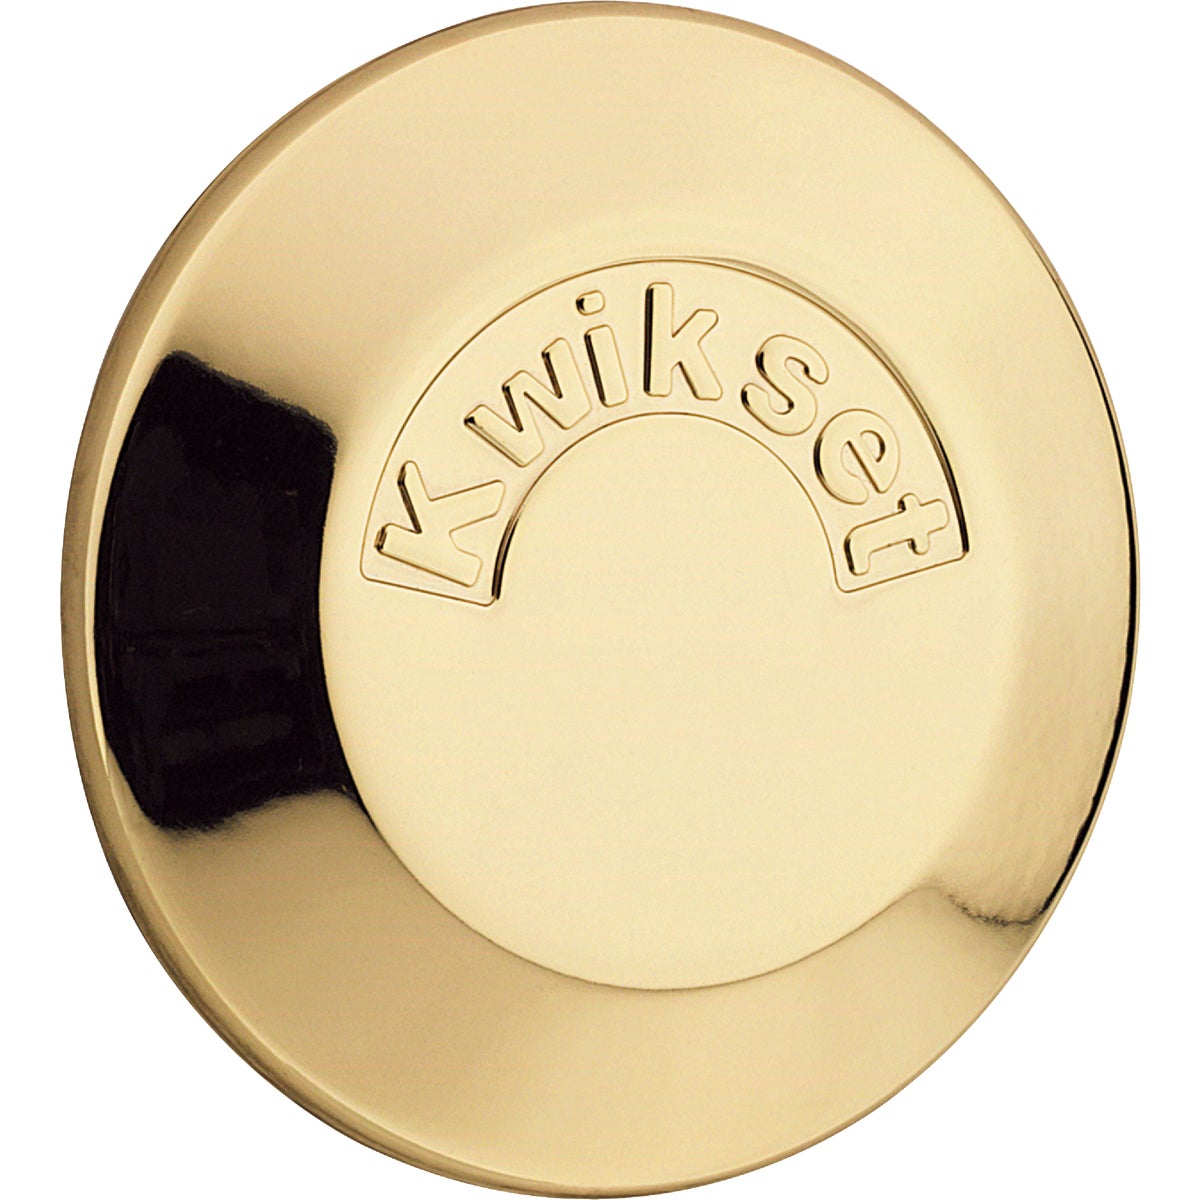 PB BX SNGL SIDE DEADBOLT - 667 3 AL by Kwikset